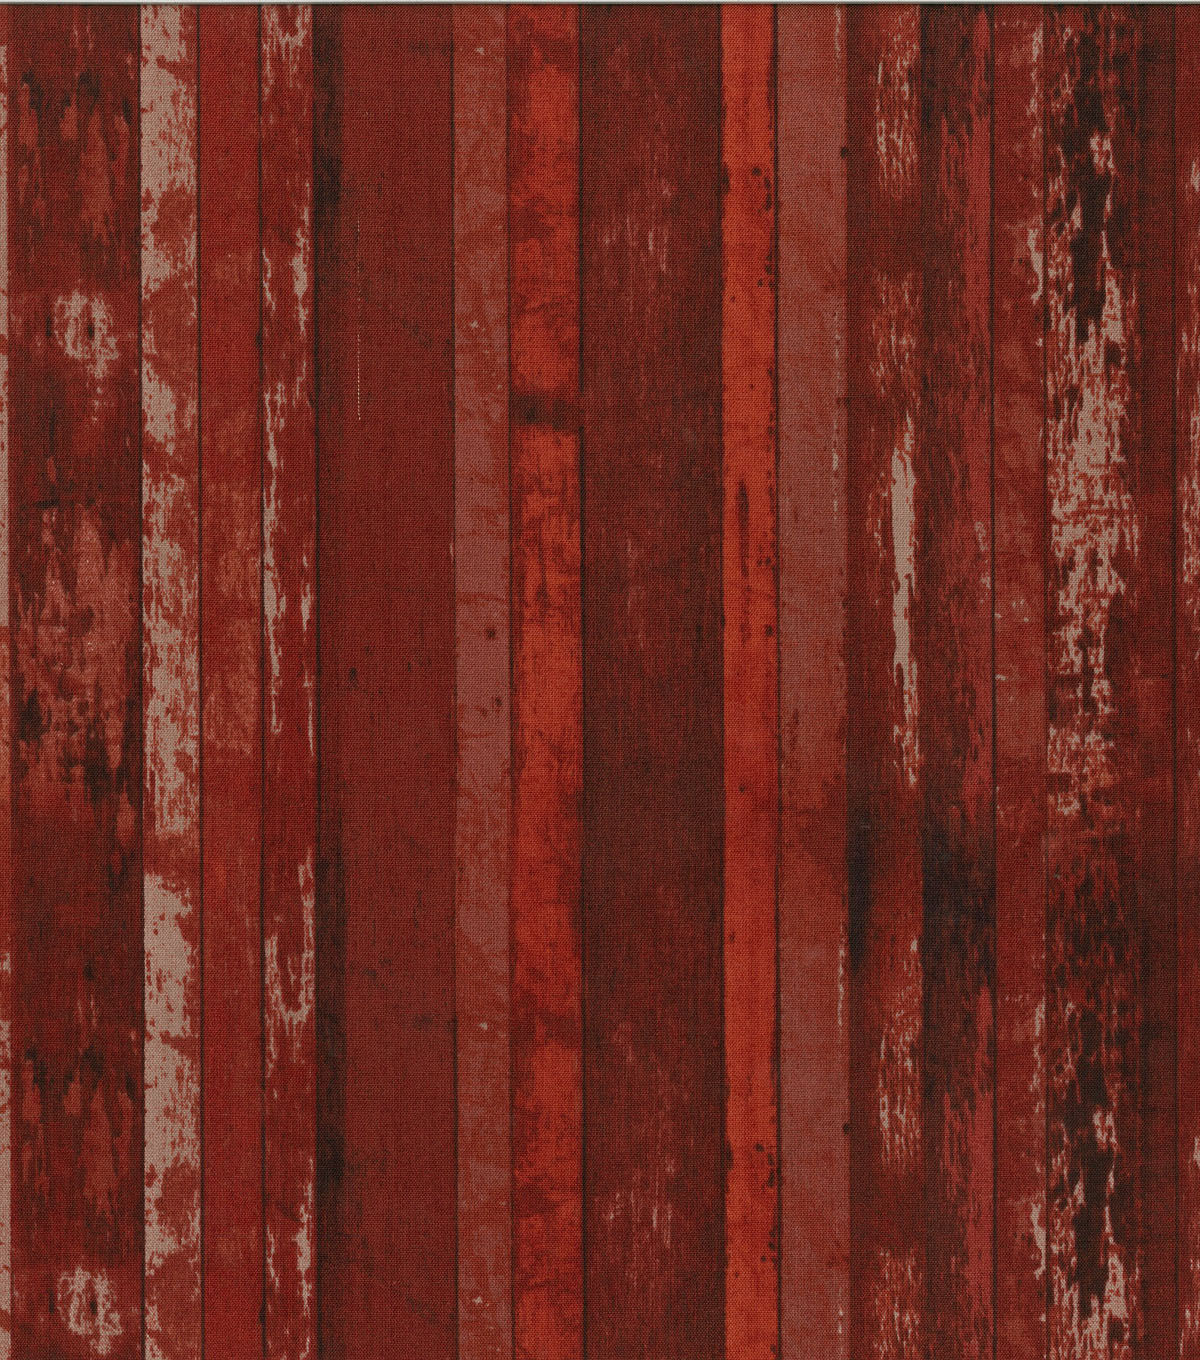 Keepsake Calico Cotton Fabric-Distressed Wood Red